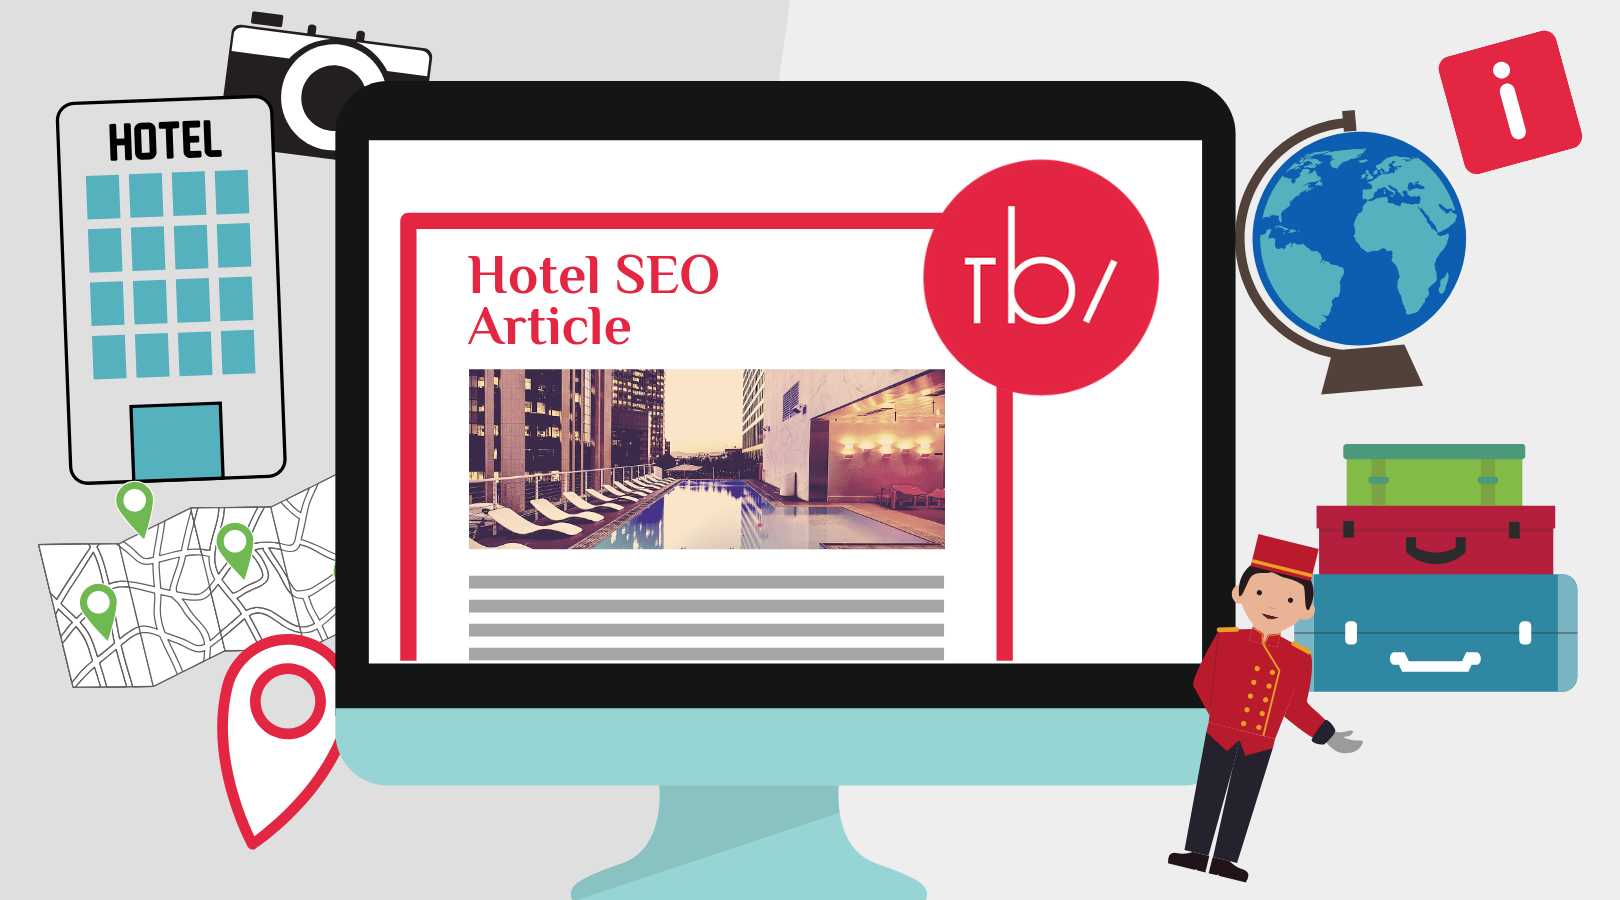 Hotel SEO Articles: Optimized Articles for your Hotel, with your Booking Engine connected